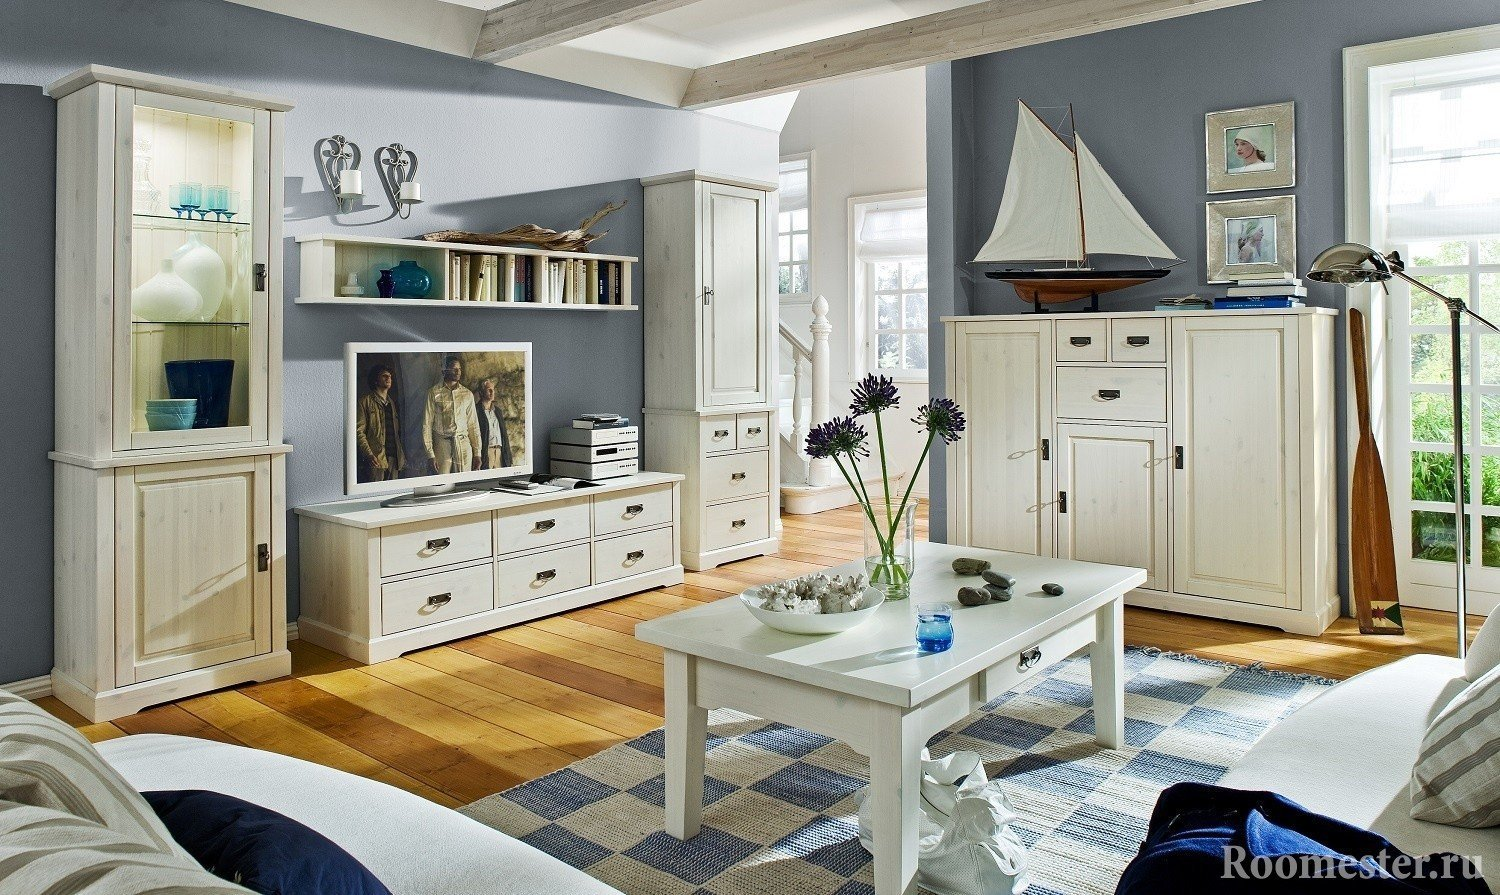 White furniture in the living room